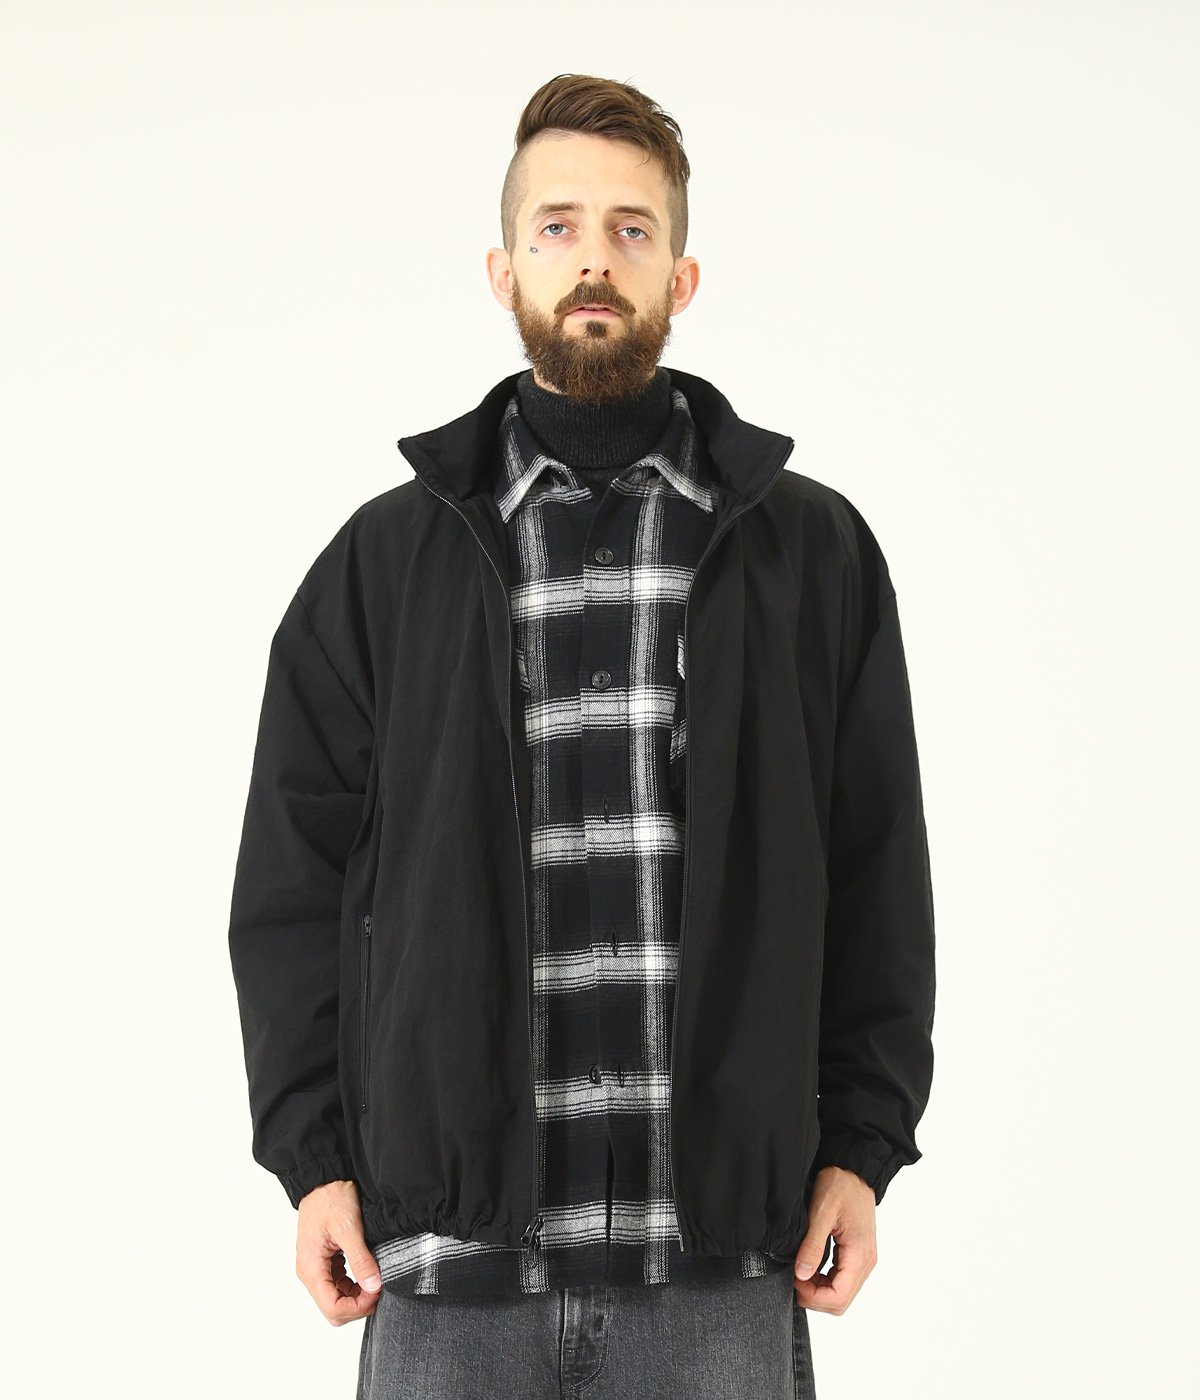 RIPPLE NYLON WEATHER TRACK JACKET